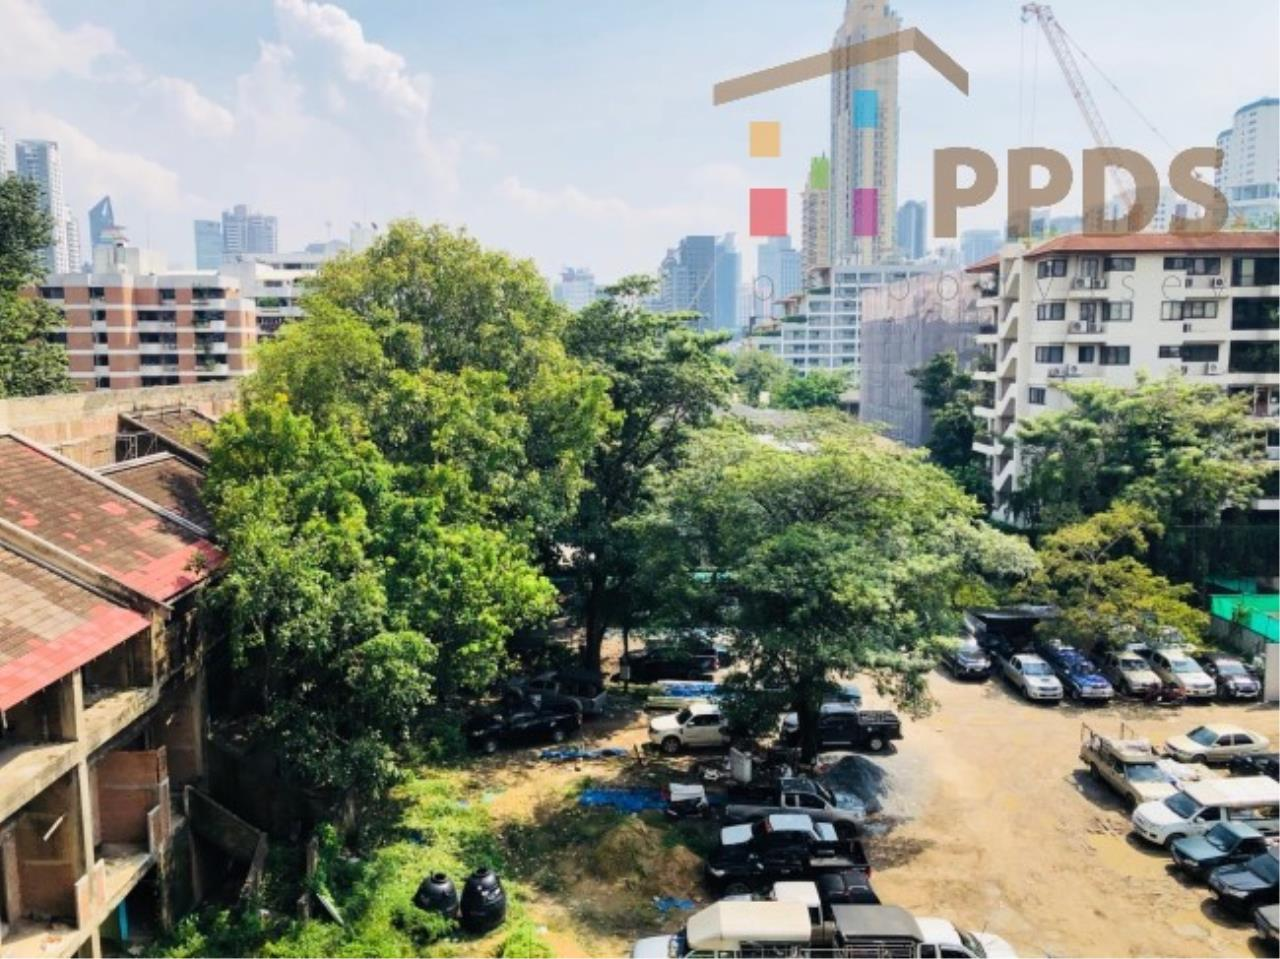 Propodyssey Agency's Sale 2 beds condo at Kiarti Thanee City Mansion Sukhumvit 31 only 6.78 MB 5